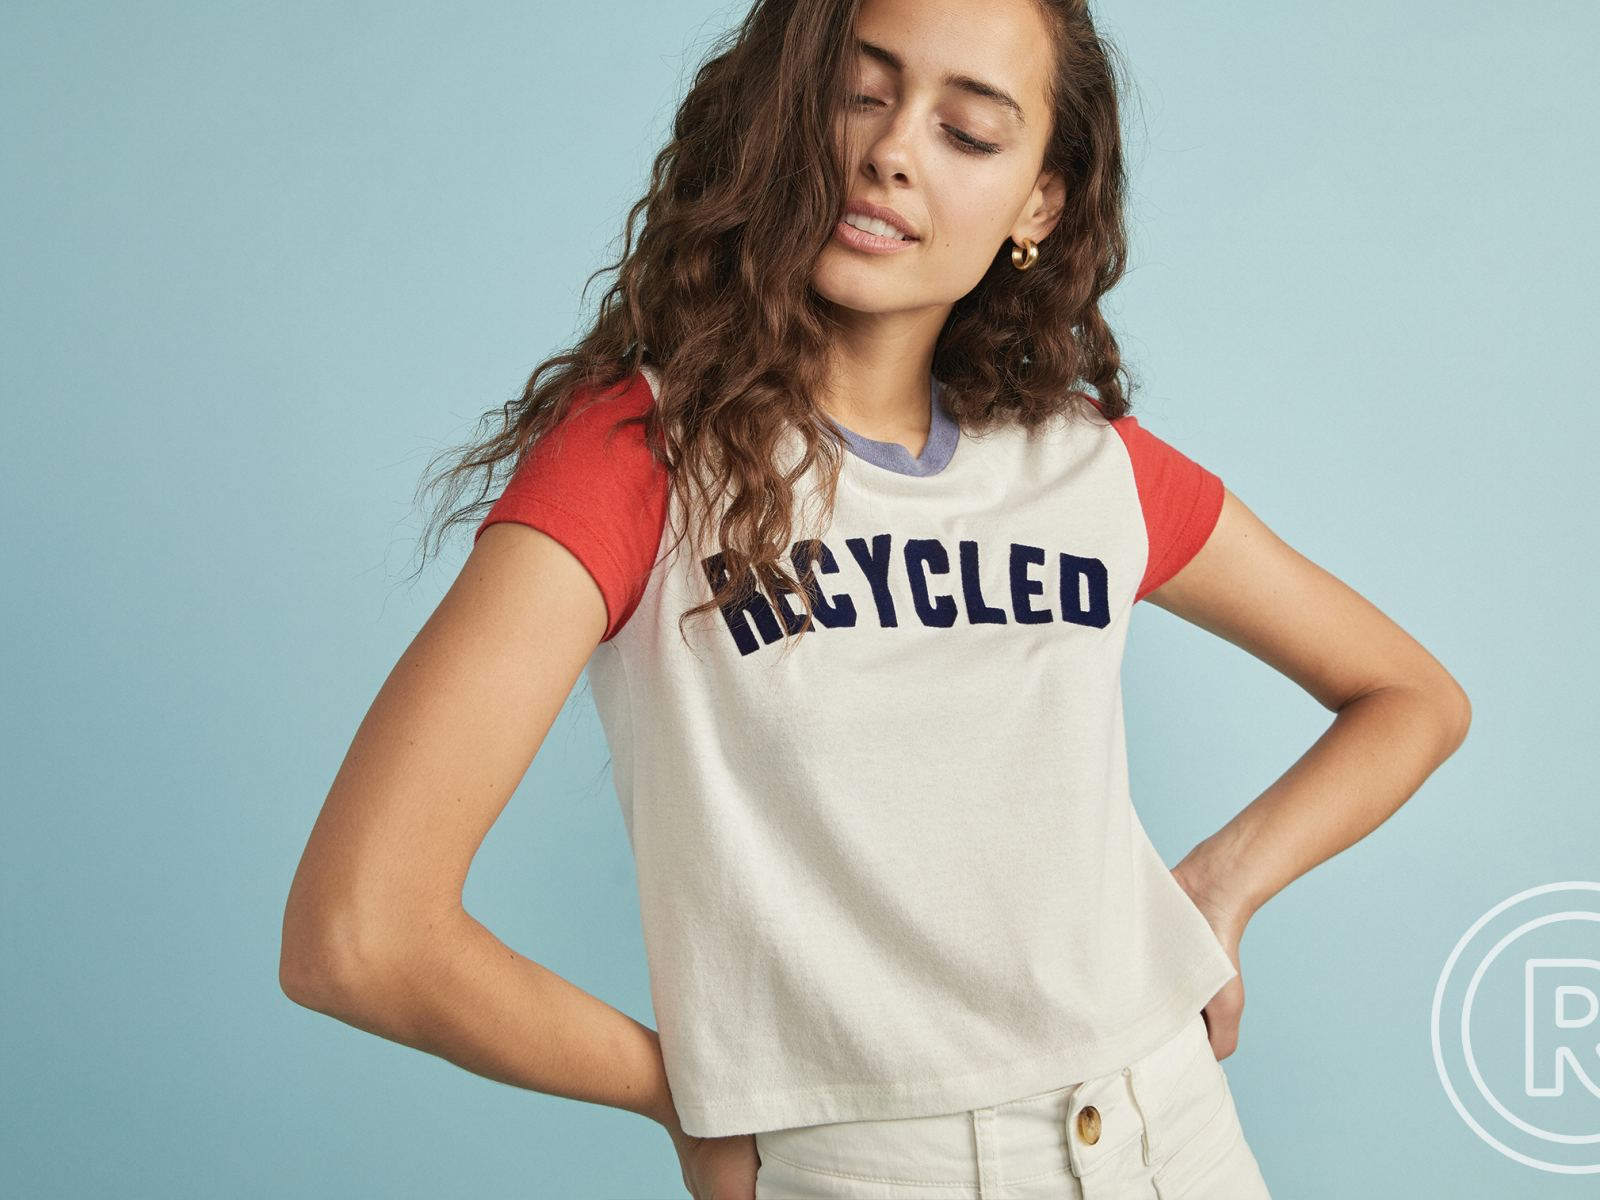 E-SPUN Recycled Graphic Tee at Marine Layer